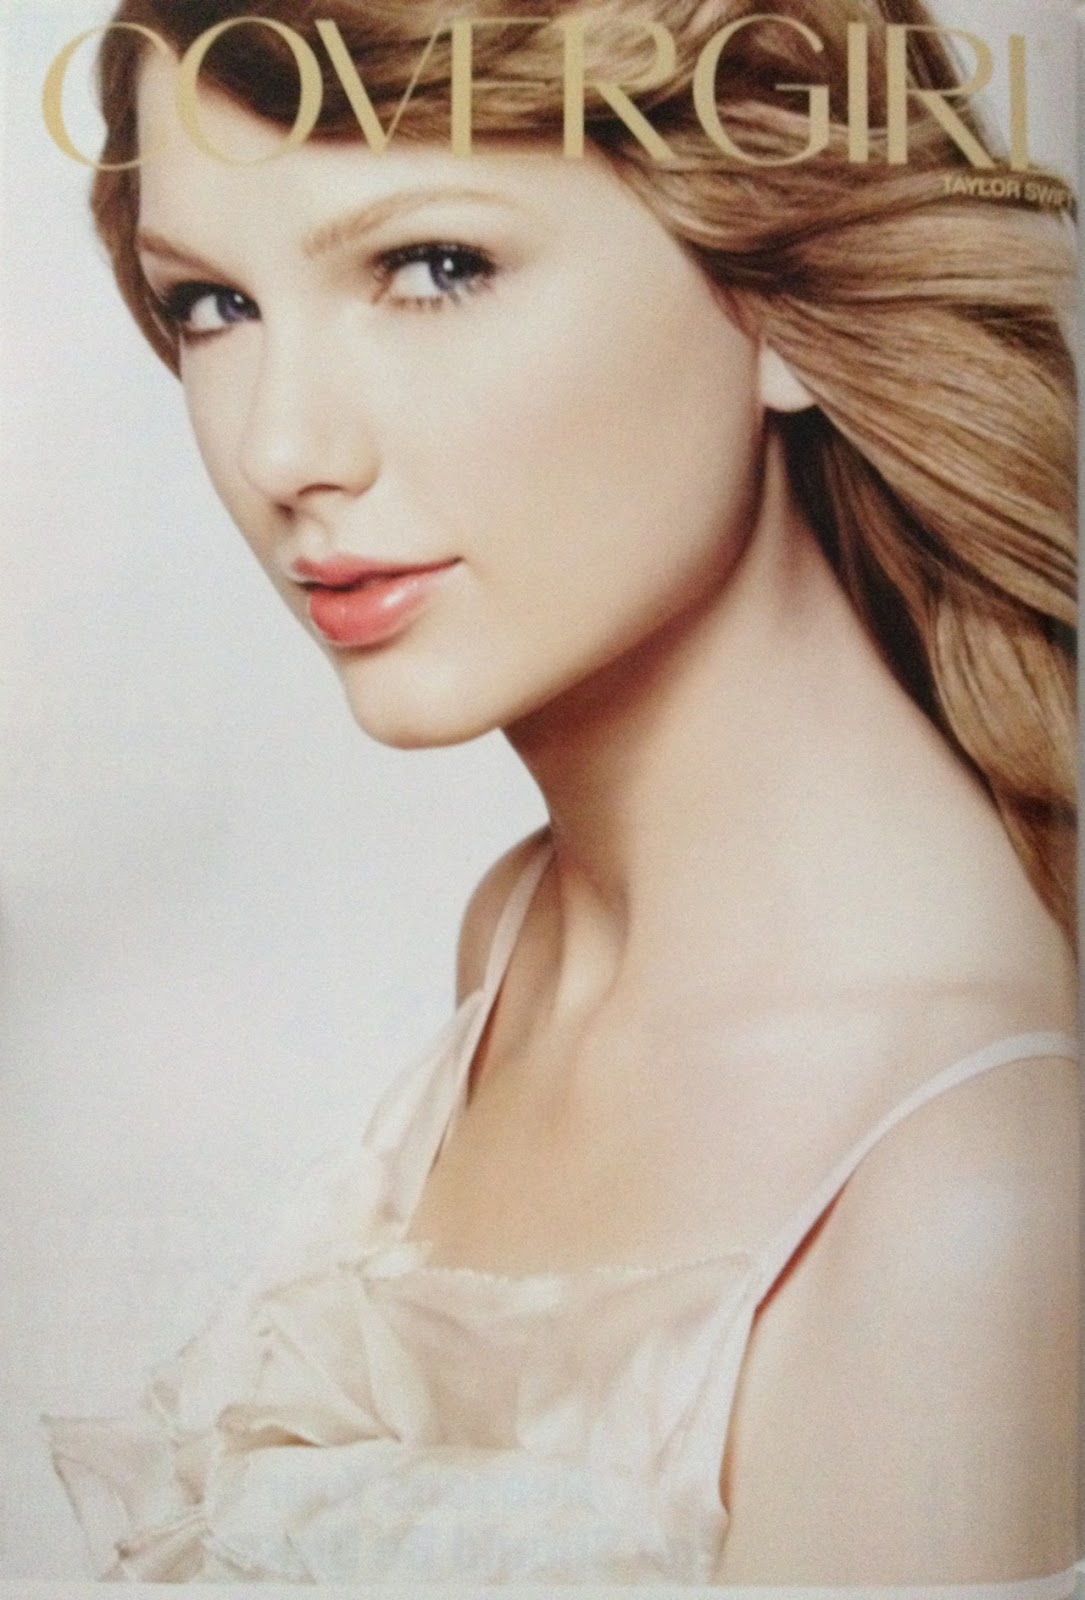 Taylor swift covergirl